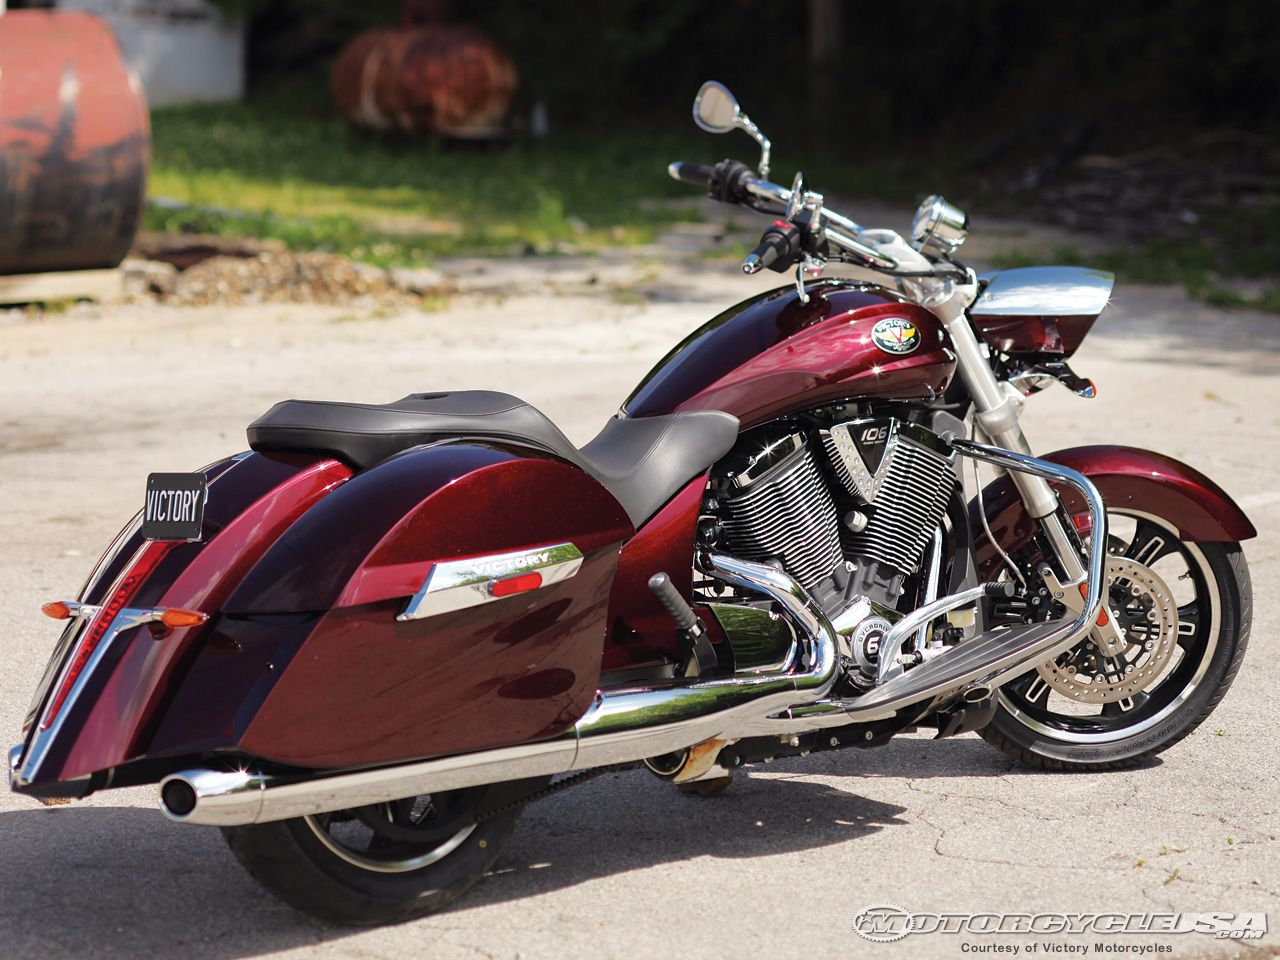 Image Detail For Victory Vision Page 2 Honda Shadow Forums Shadow Motorcycle Victory Motorcycles Motorcycle